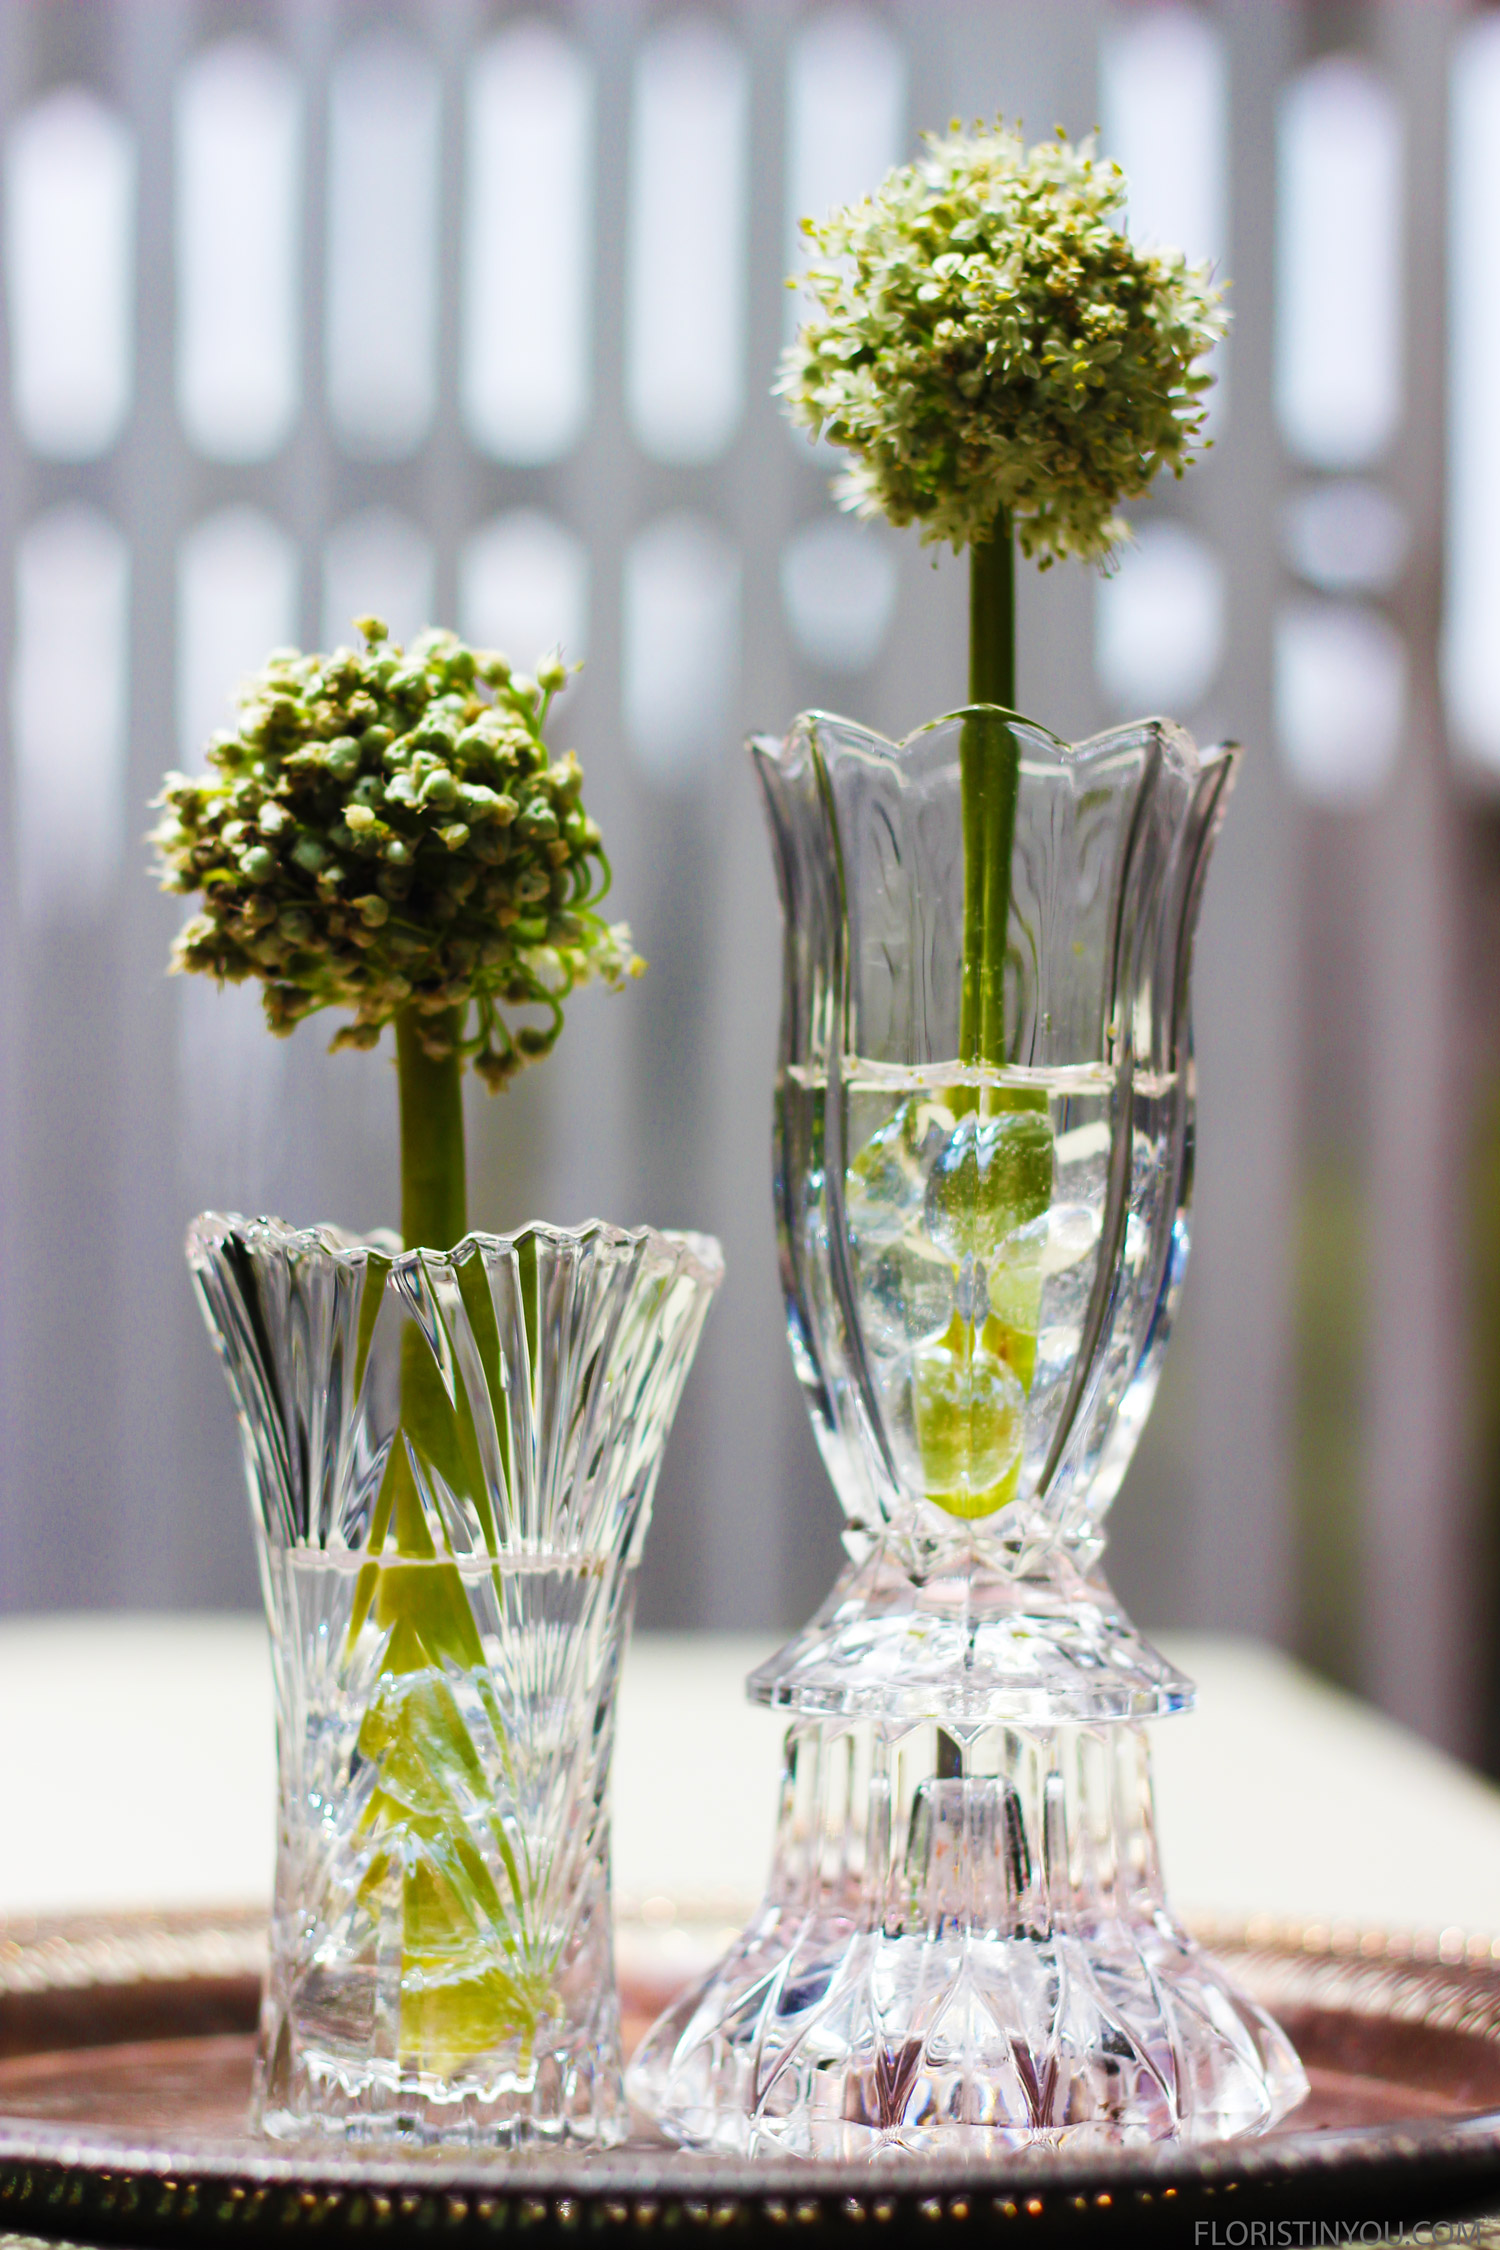 Put one vase on top of a crystal candlestick holder to give it some extra height. 'Cheating...cheating....hahaha.'